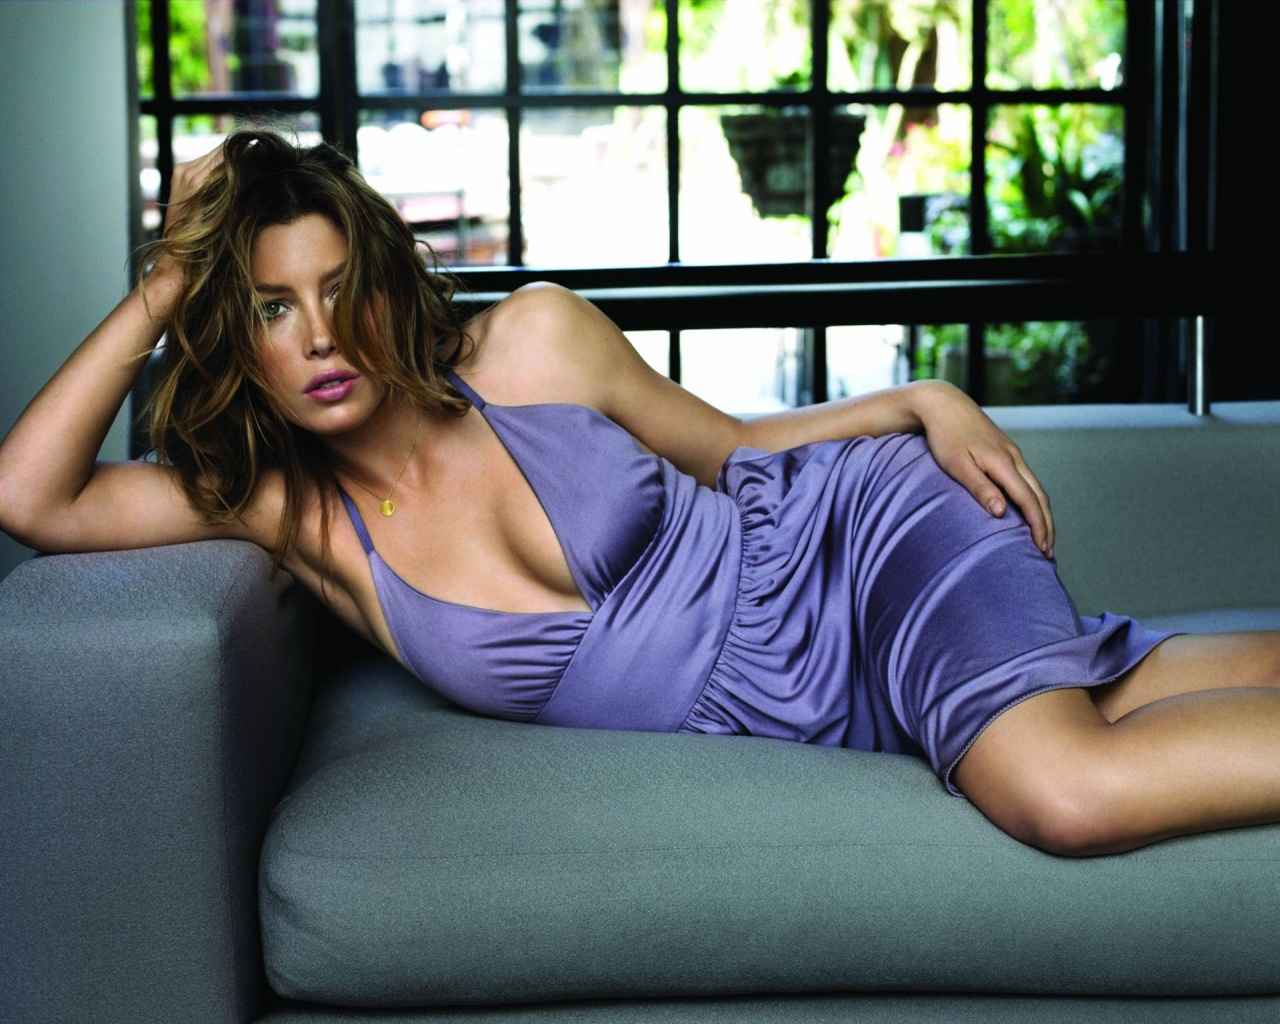 http://1.bp.blogspot.com/-ebIy8HuEWlk/TXuHNE0TFJI/AAAAAAAAAw8/QwAo-ft-76w/s1600/actress_jessica_biel_hot_wallpaper.jpg